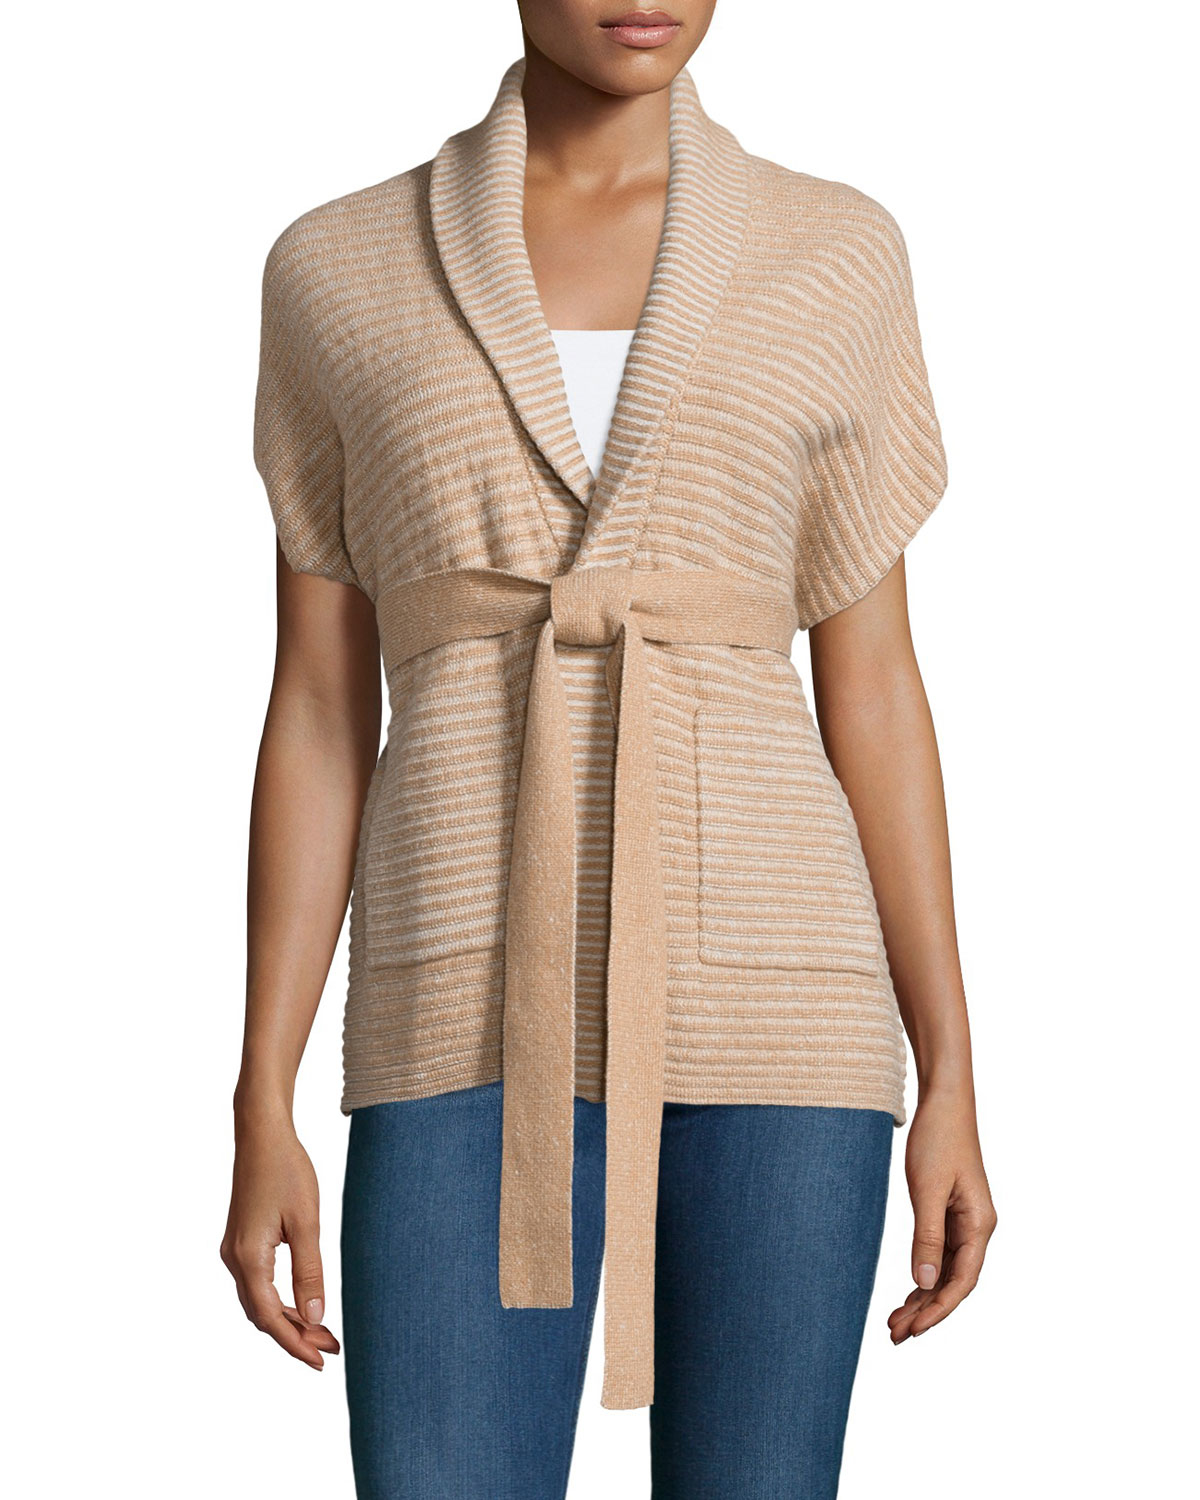 Todd and duncan Cashmere Belted Short-sleeve Cardigan in Natural ...